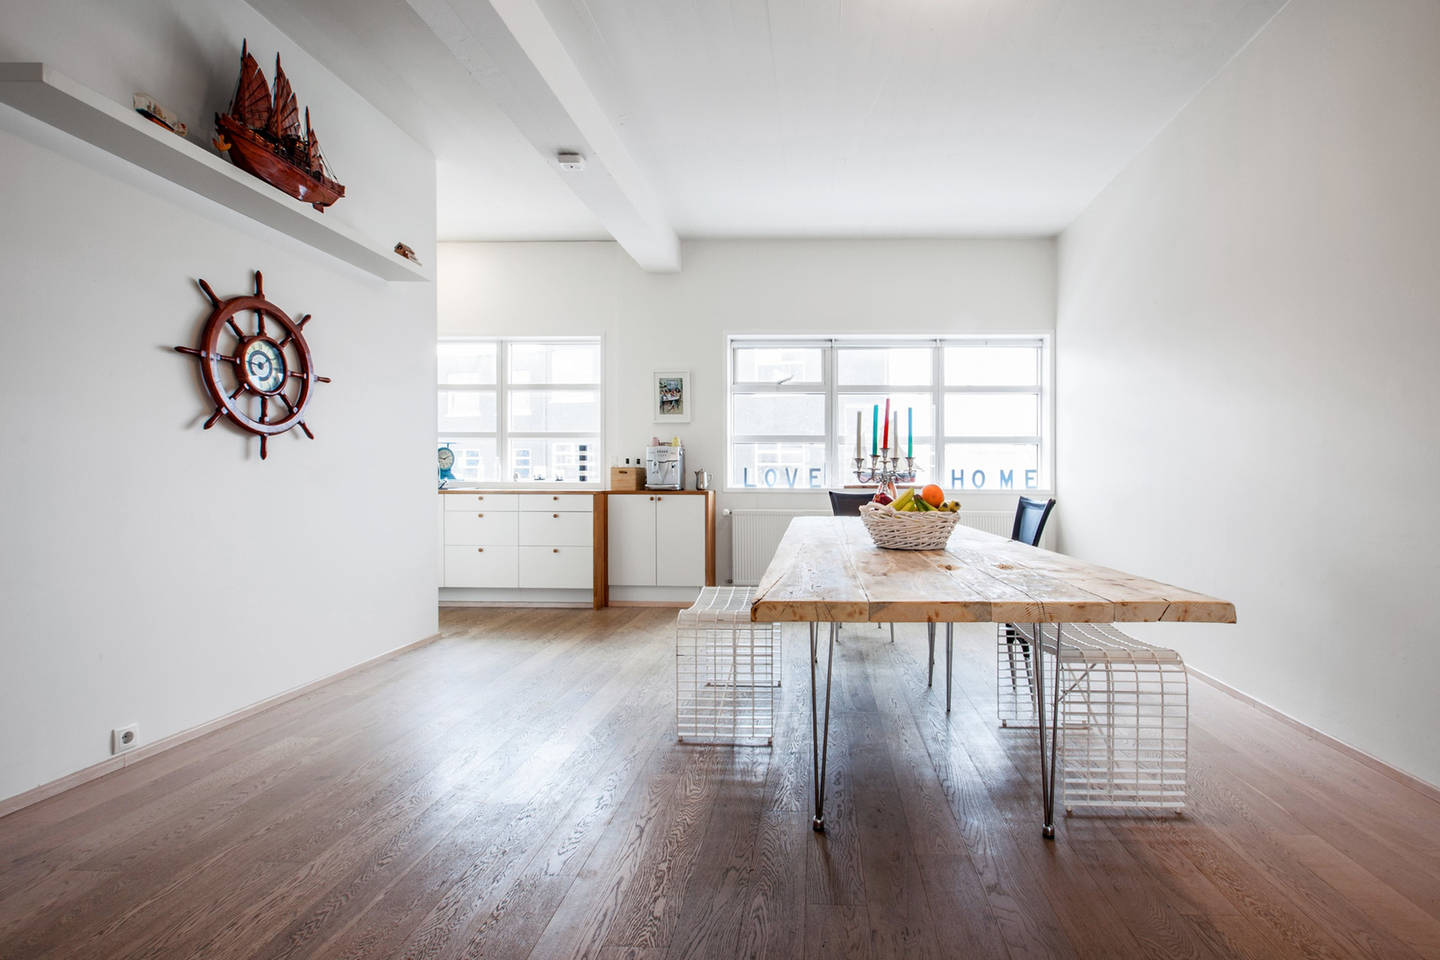 The dining room and kitchen in the Apartment in the Heart of the City. Image c/o    Airbnb   .